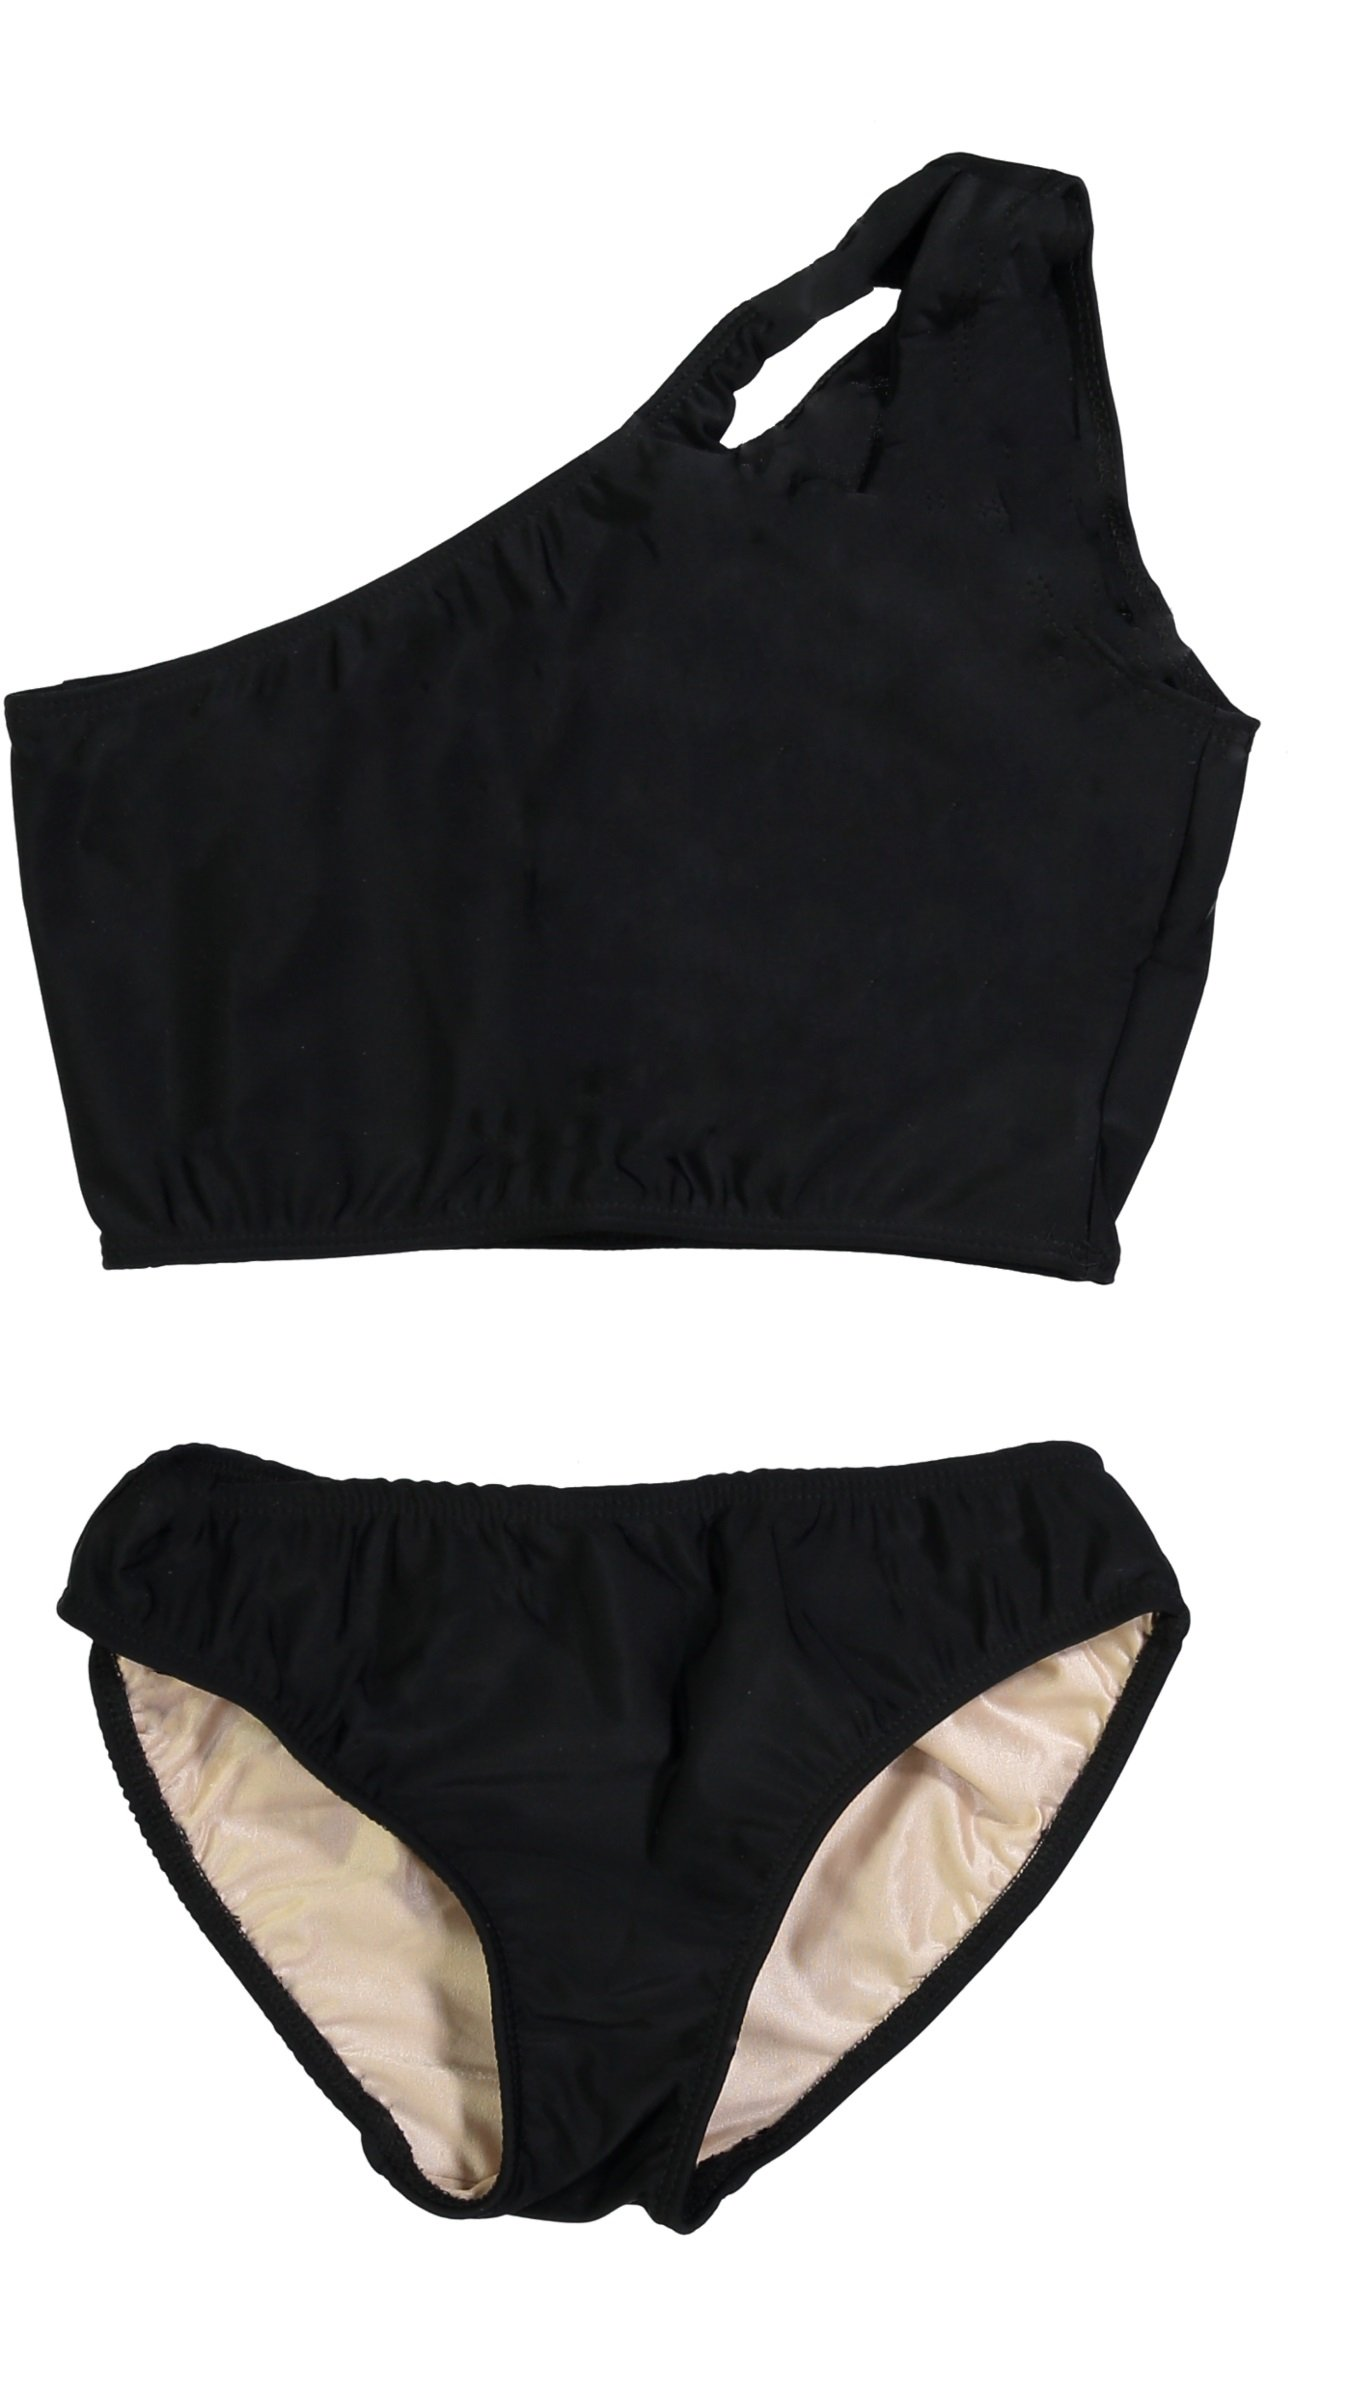 Cheryl Creations Kids Girl's Black Cute & Comfortable Two Piece One Shoulder Bathing Suit Bikini   Swimsuit by Cheryl Creations (Image #1)